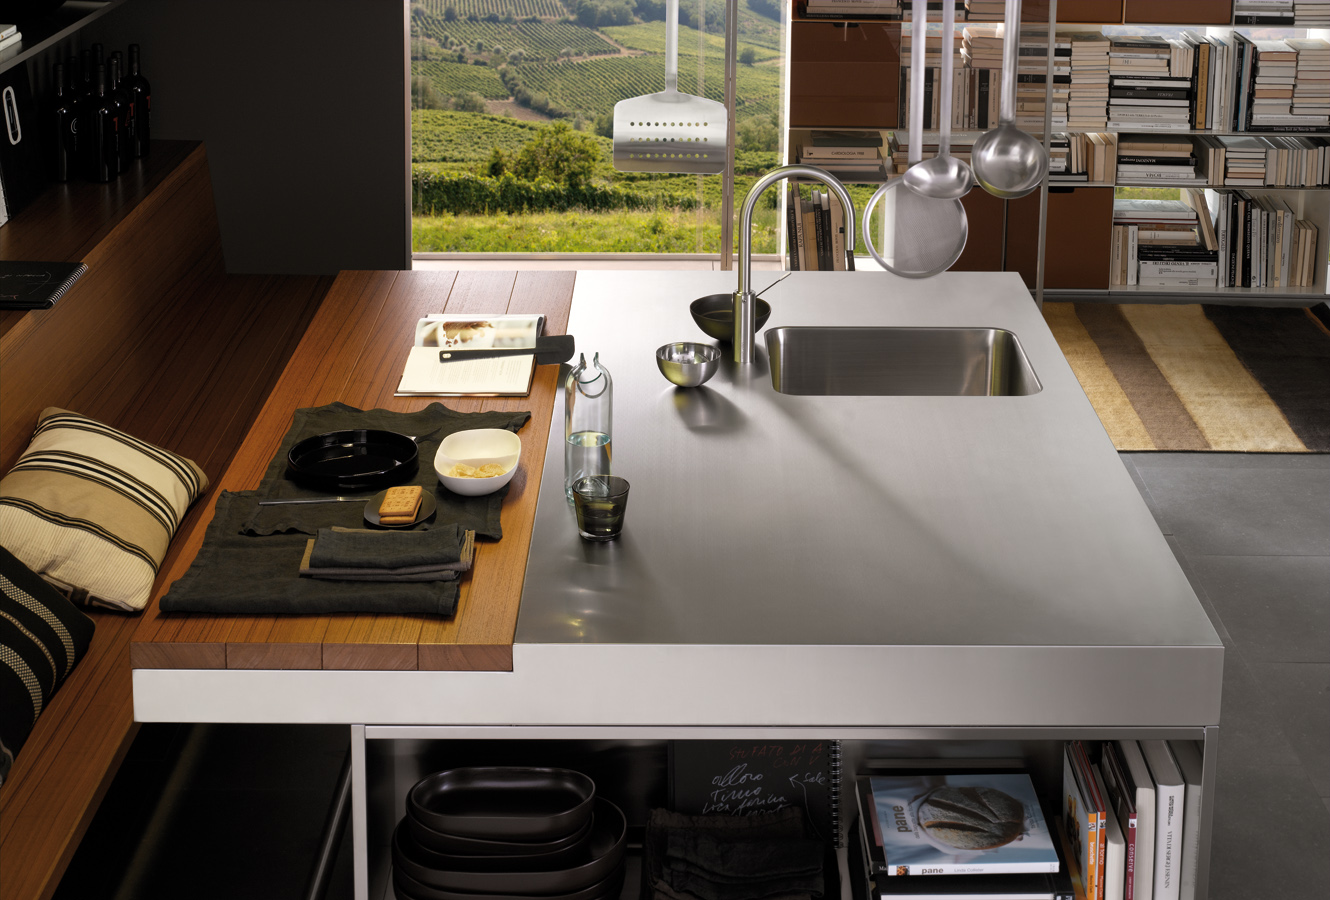 Split Table Dining And Preperation - Modern italian kitchen design from arclinea